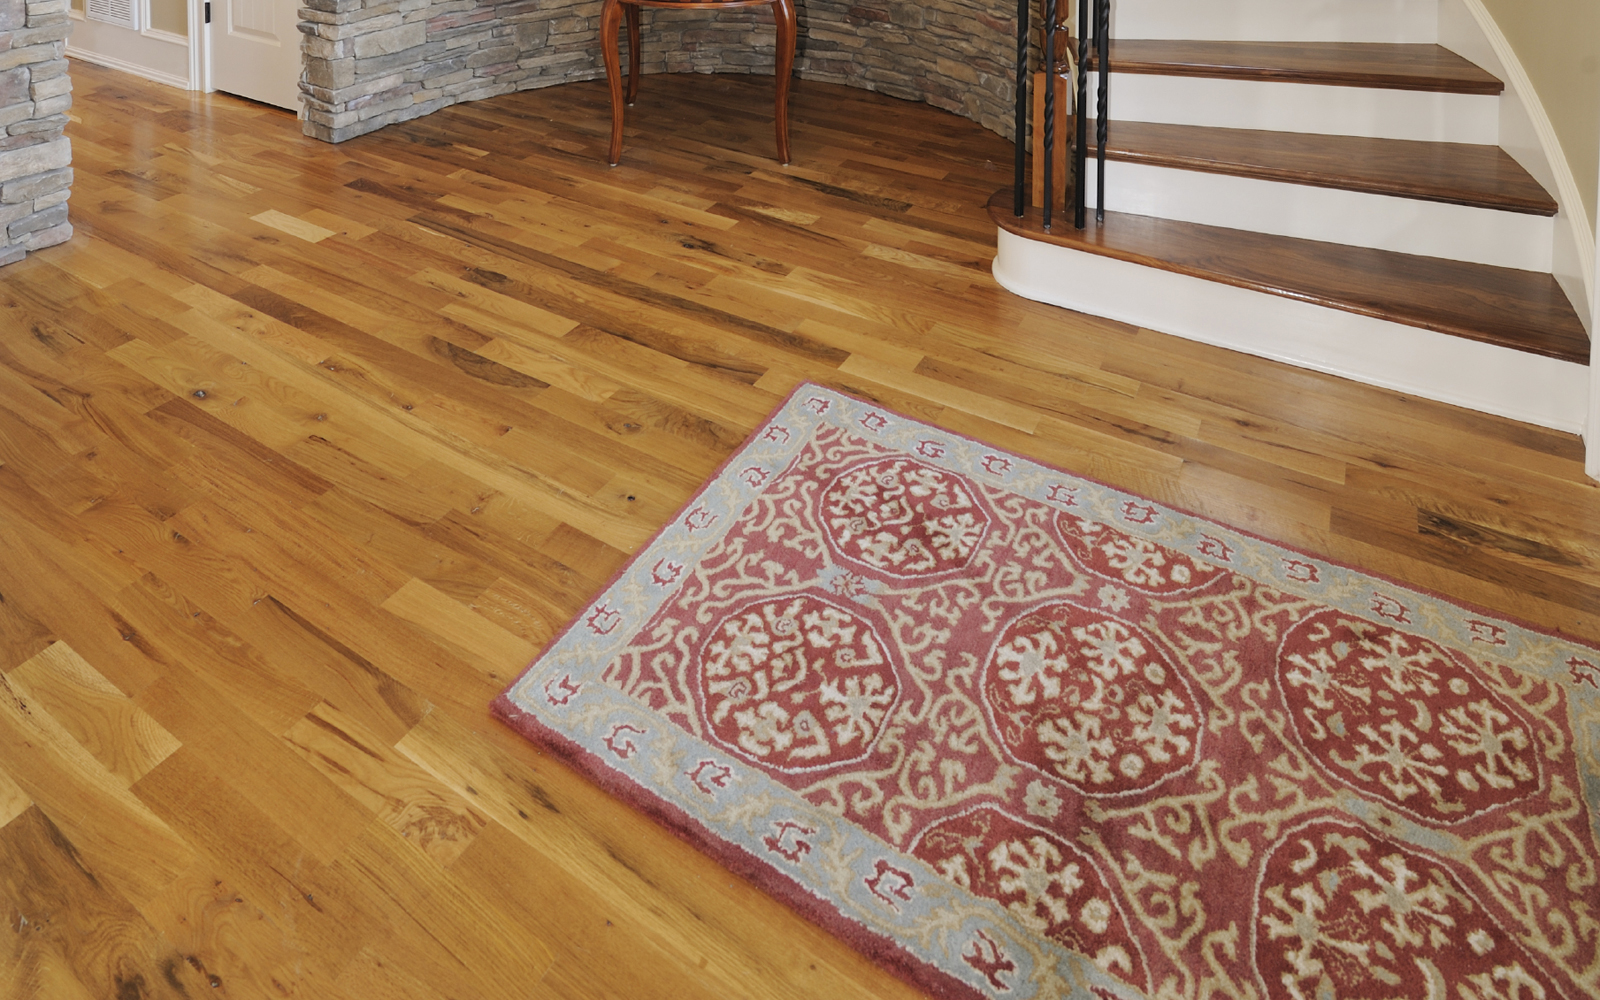 83mm Atlantic Solid Canadian Red Oak Rustic Varnished